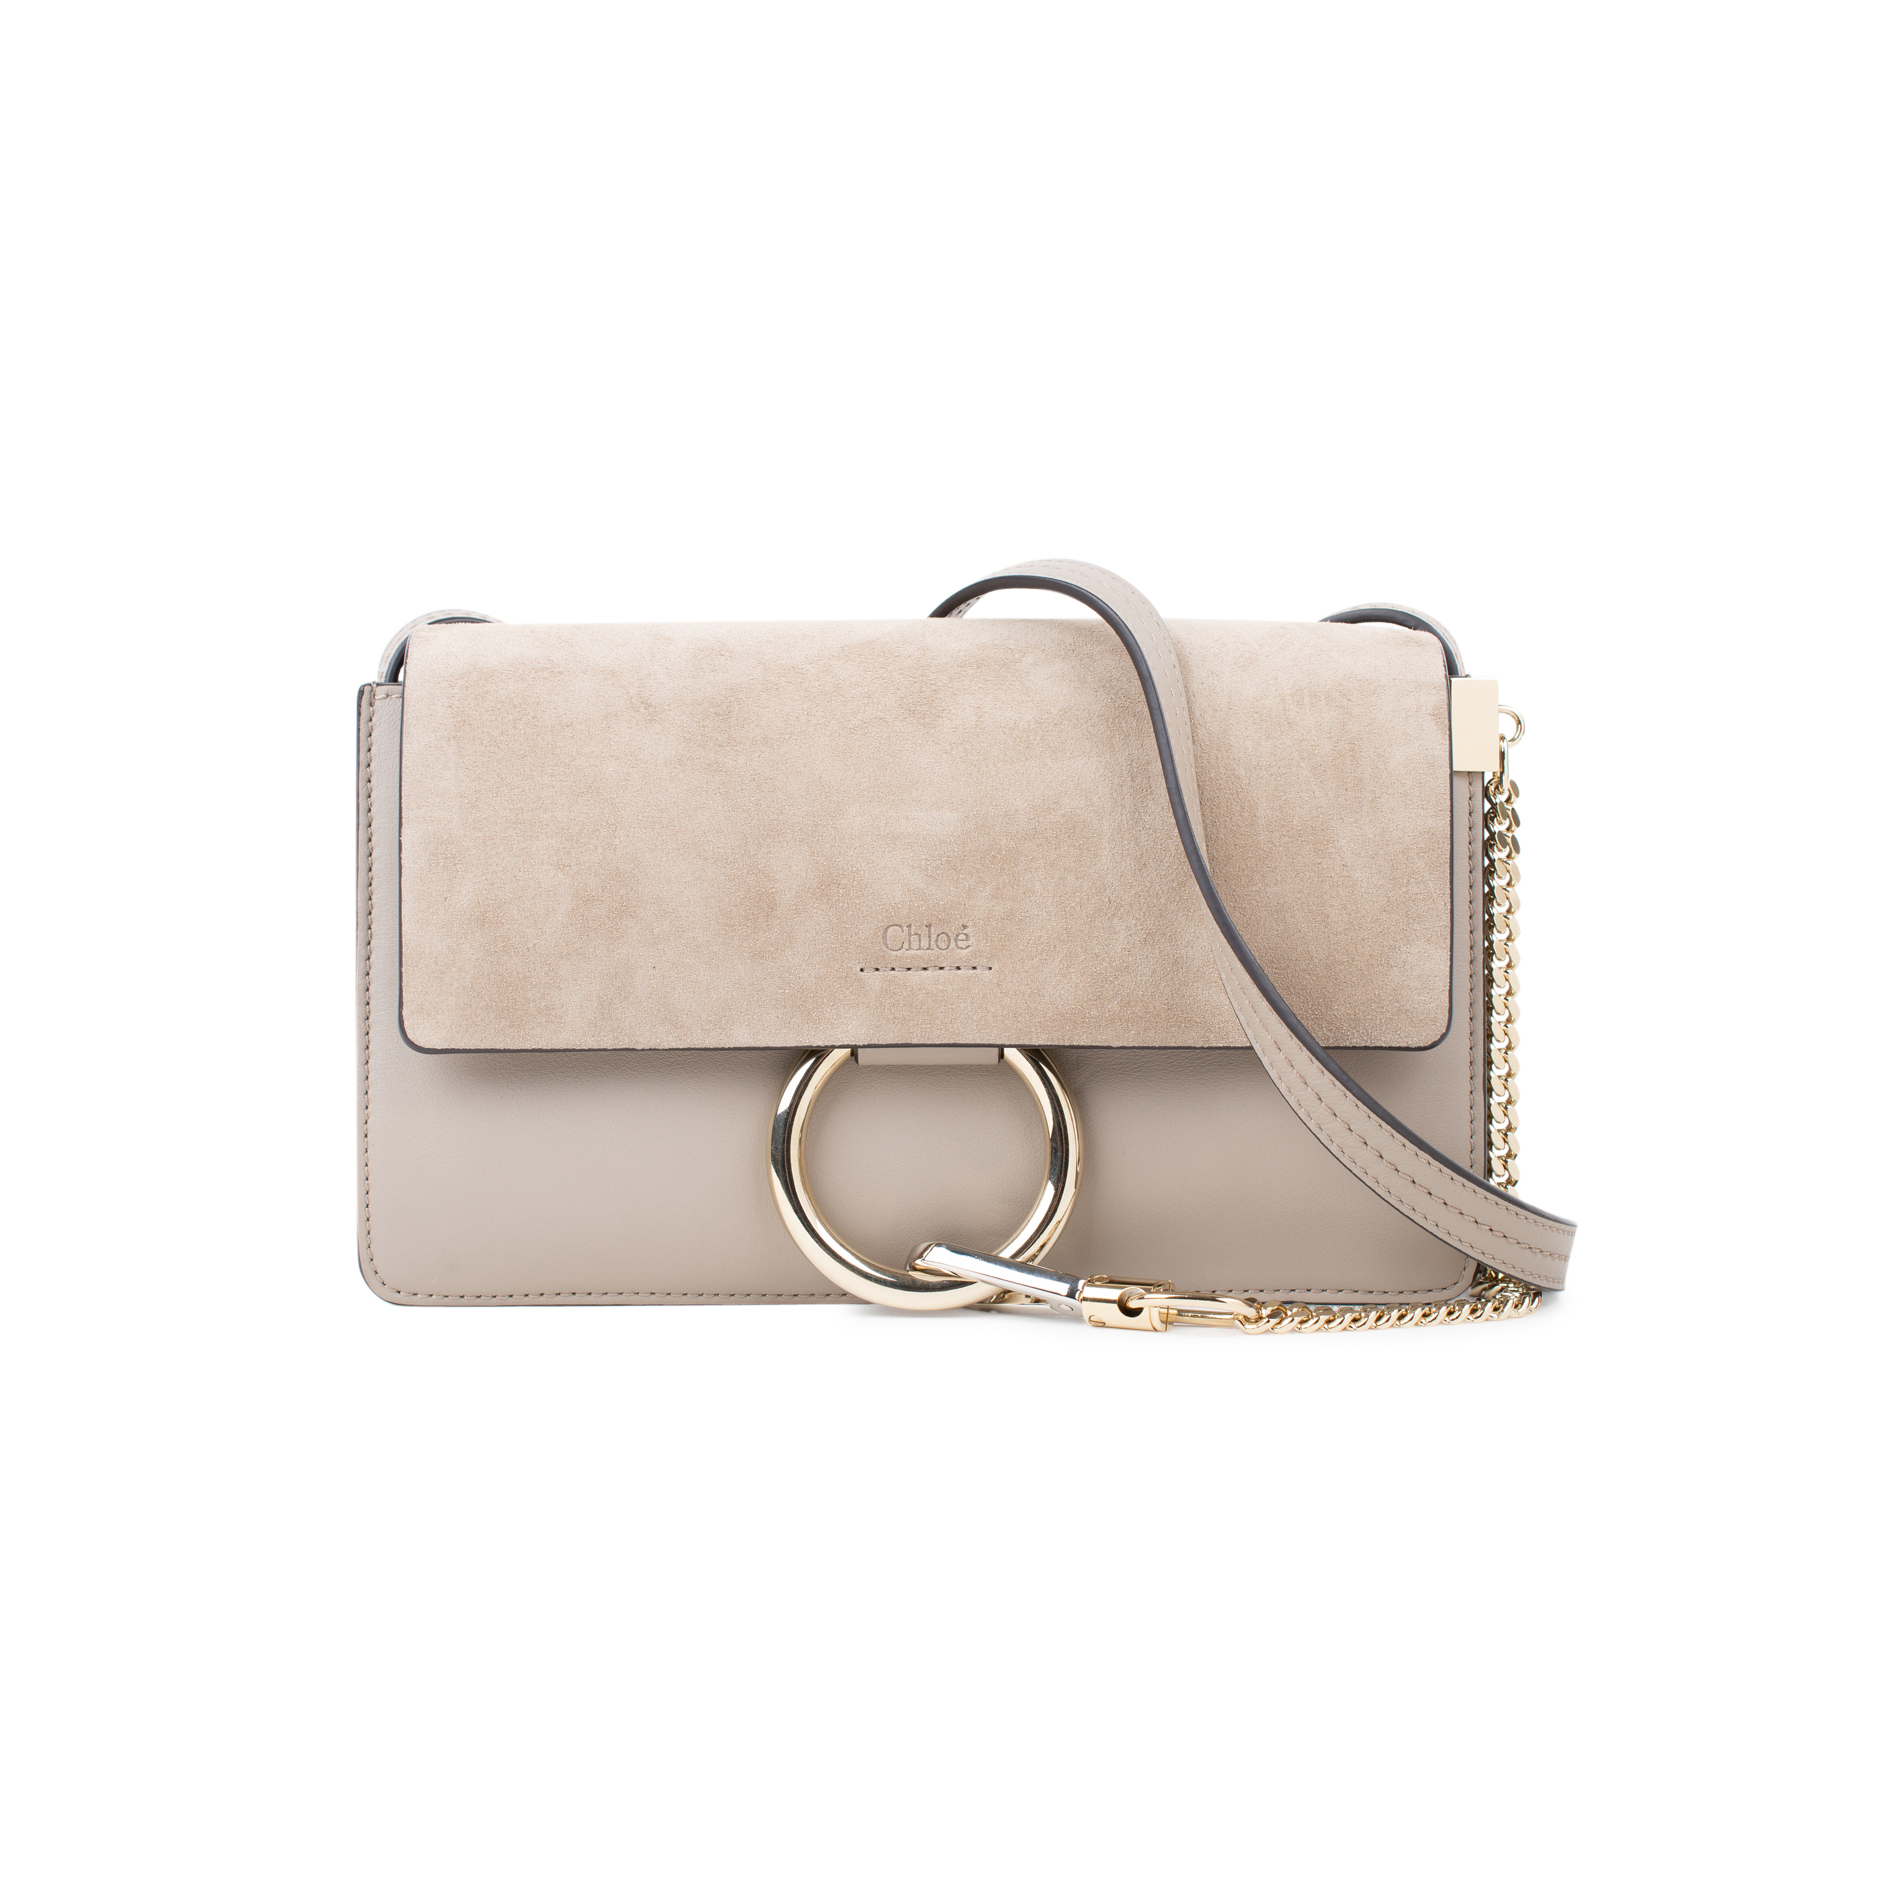 e9bea3513b2d2 Authentic Second Hand Chloé Faye Small Shoulder Bag (PSS-424-00094) - THE  FIFTH COLLECTION